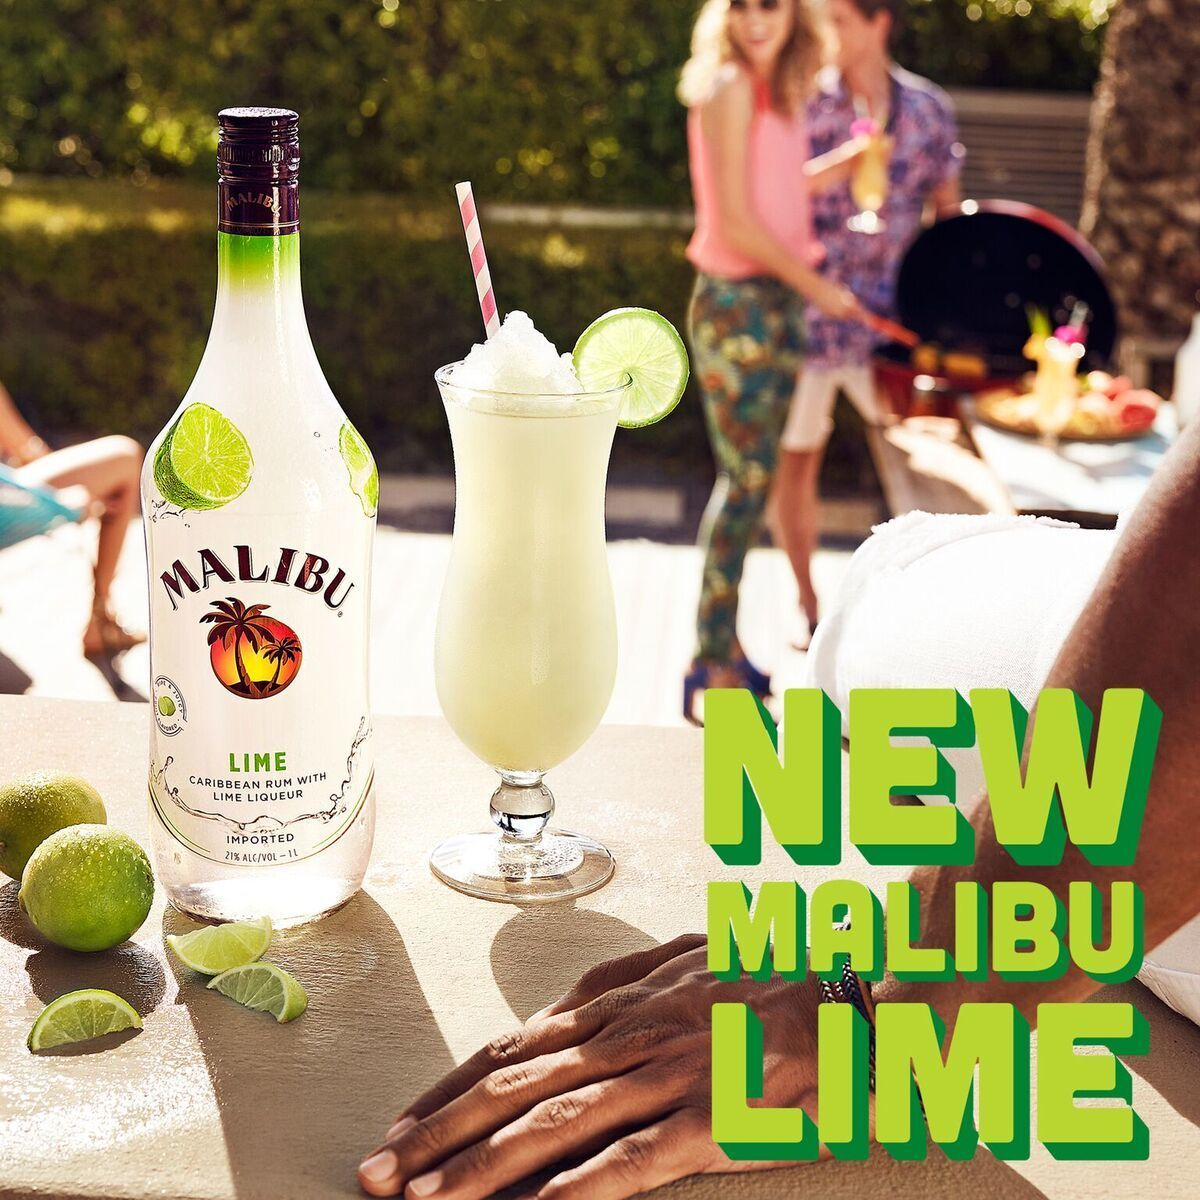 Mal lime daiquiri 1x1 text new preview